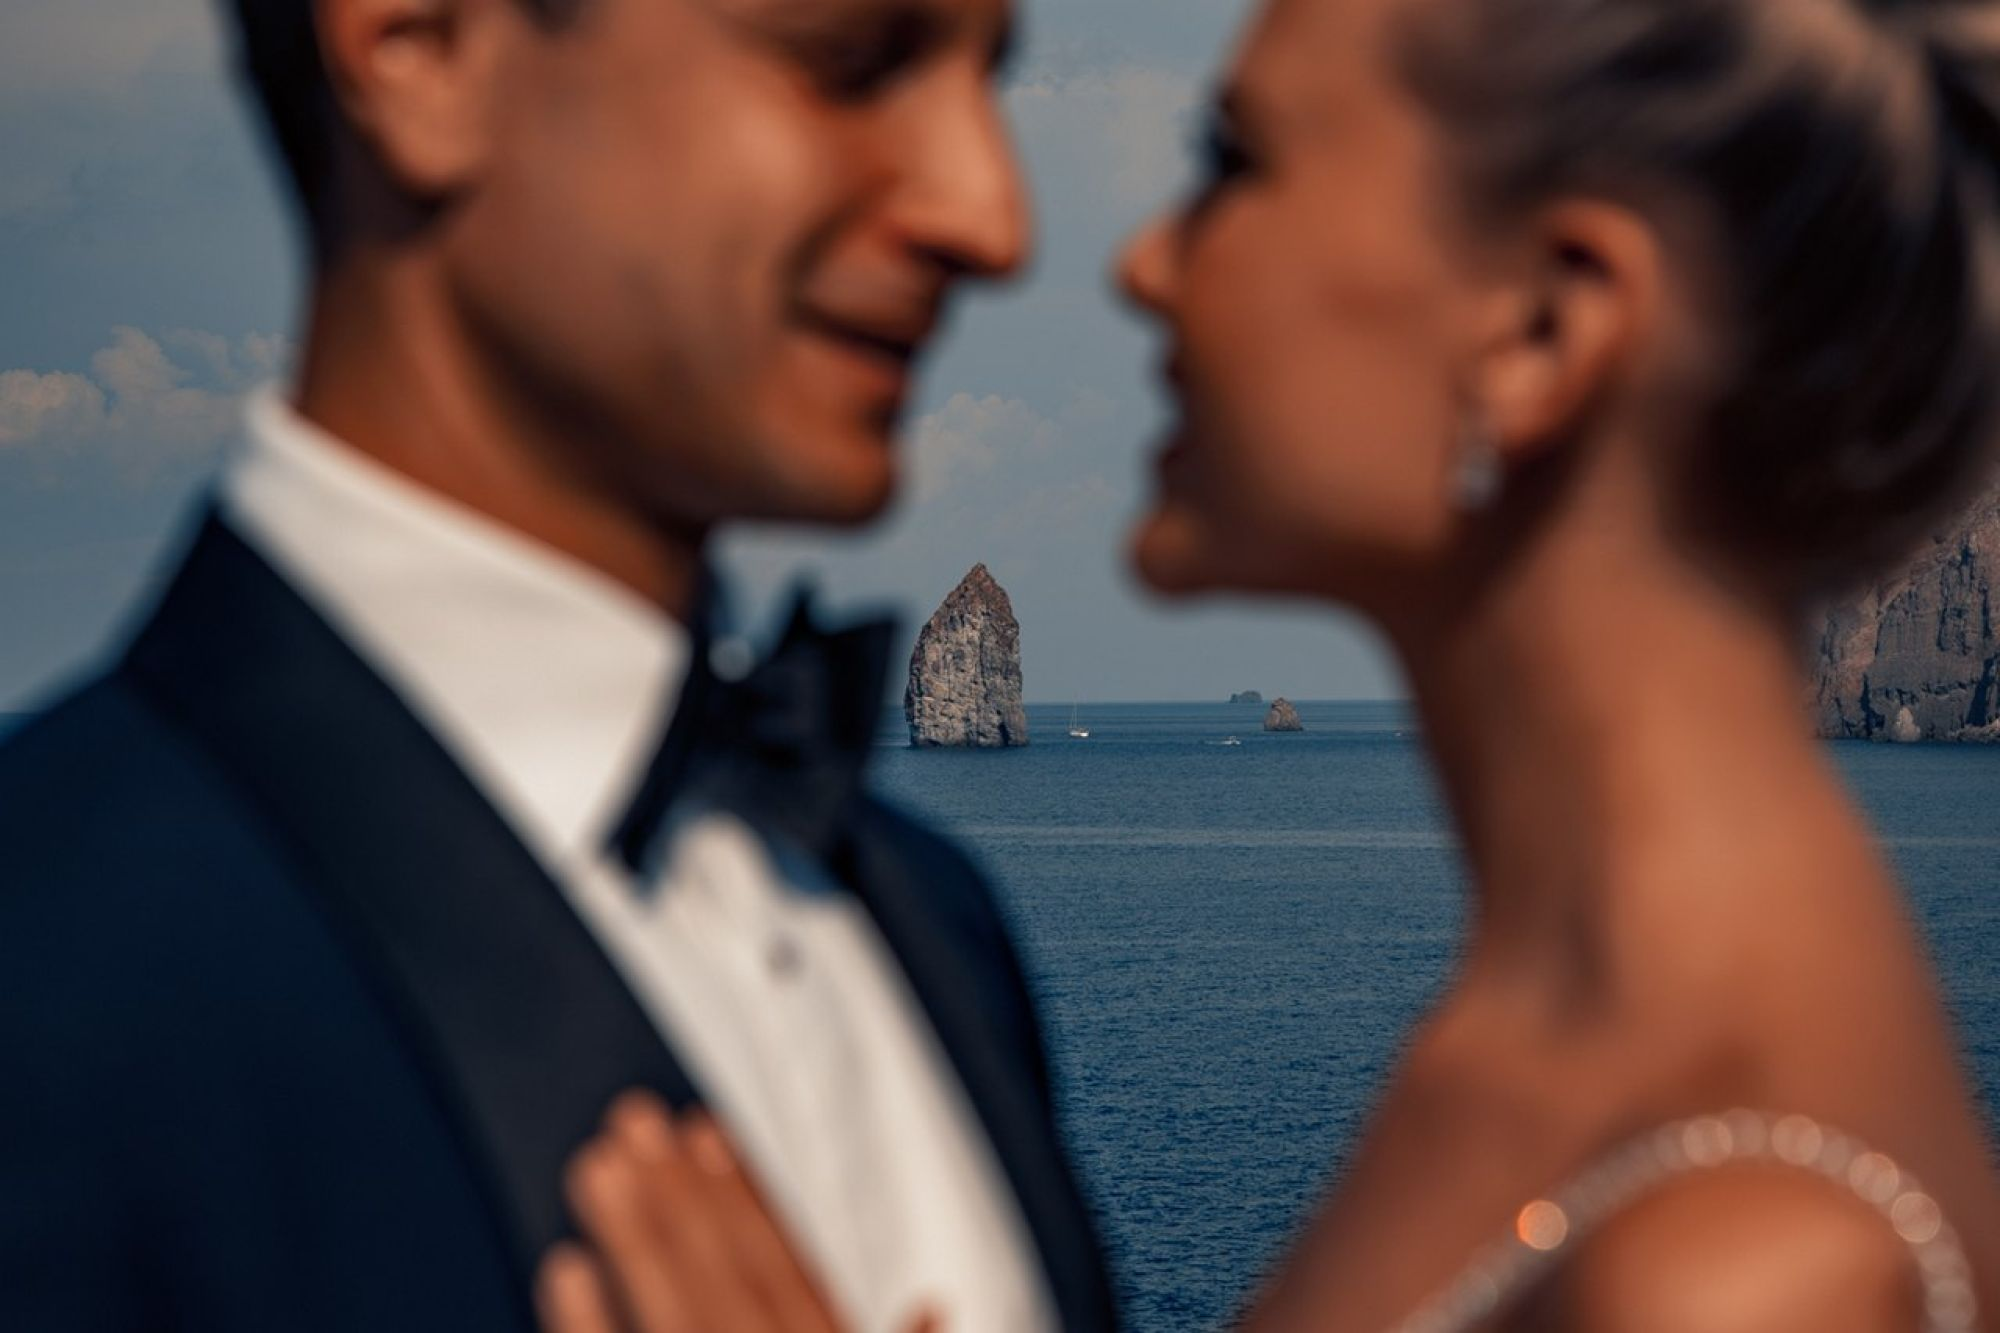 Click to enlarge image matrimonio-nikki-giuseppe-chiello-masterphotographer-sicily-wedding 1.jpg